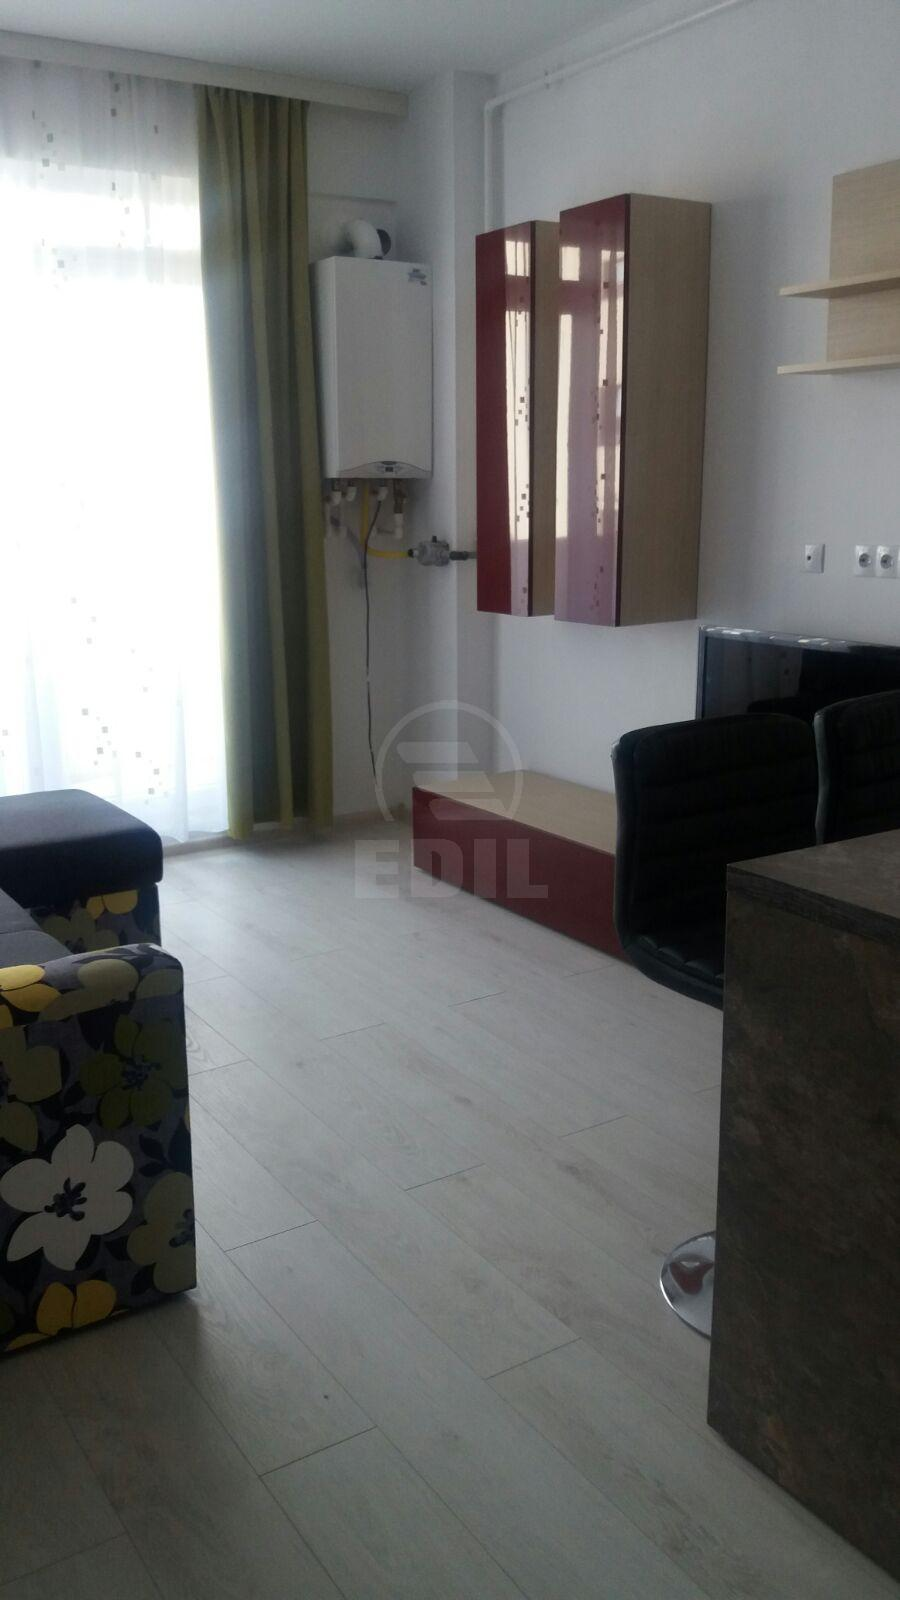 Apartment for rent 2 rooms, APCJ279074-6